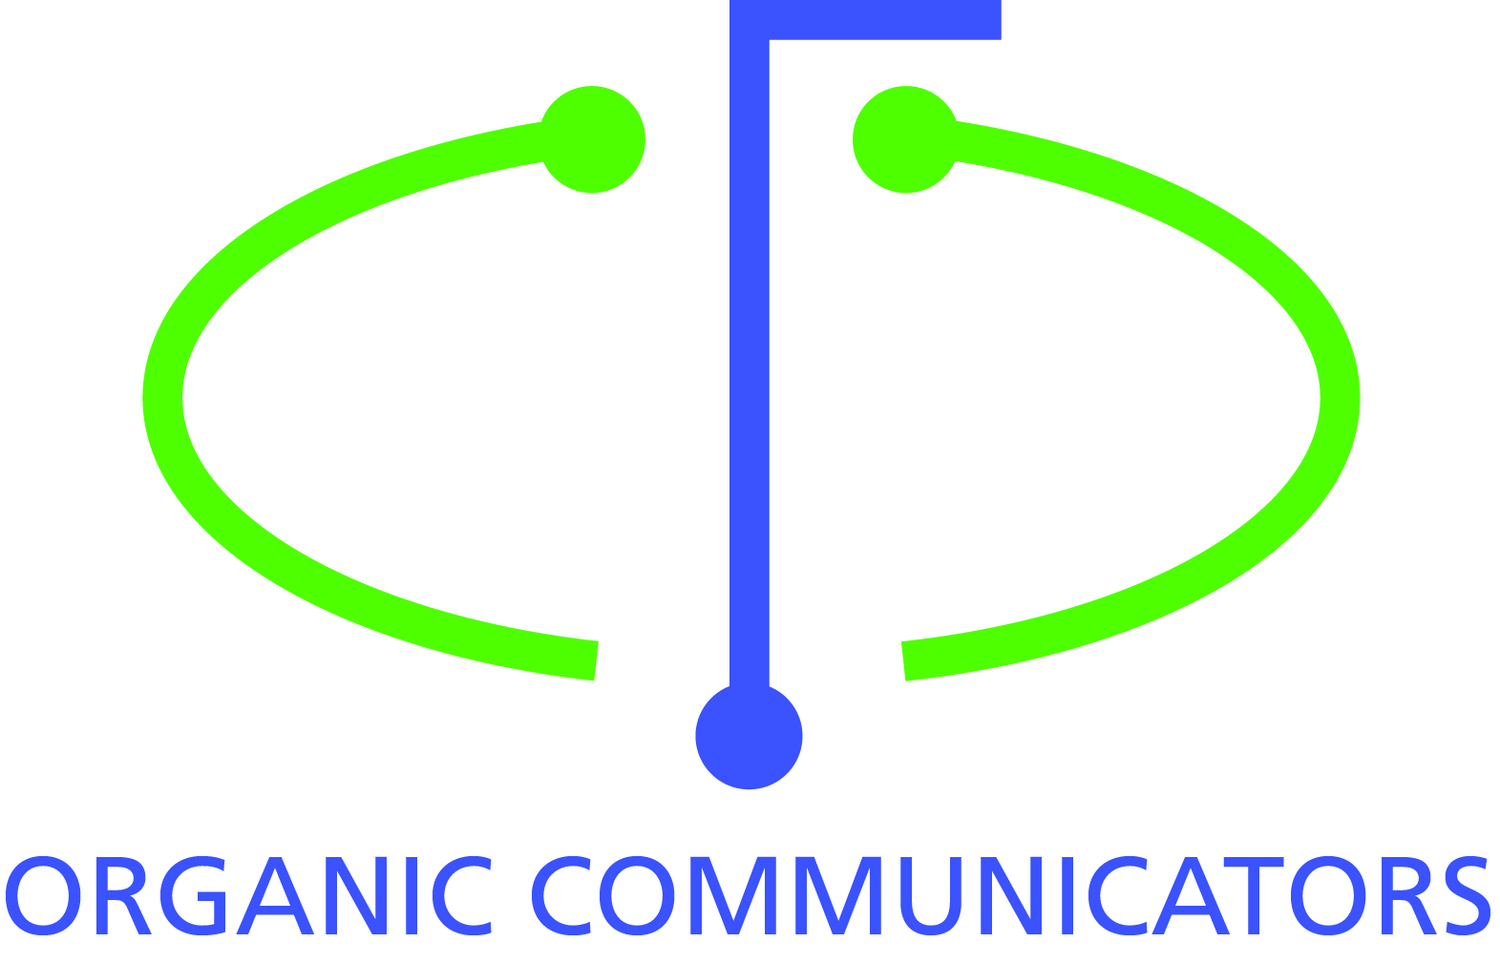 Organic Communicators